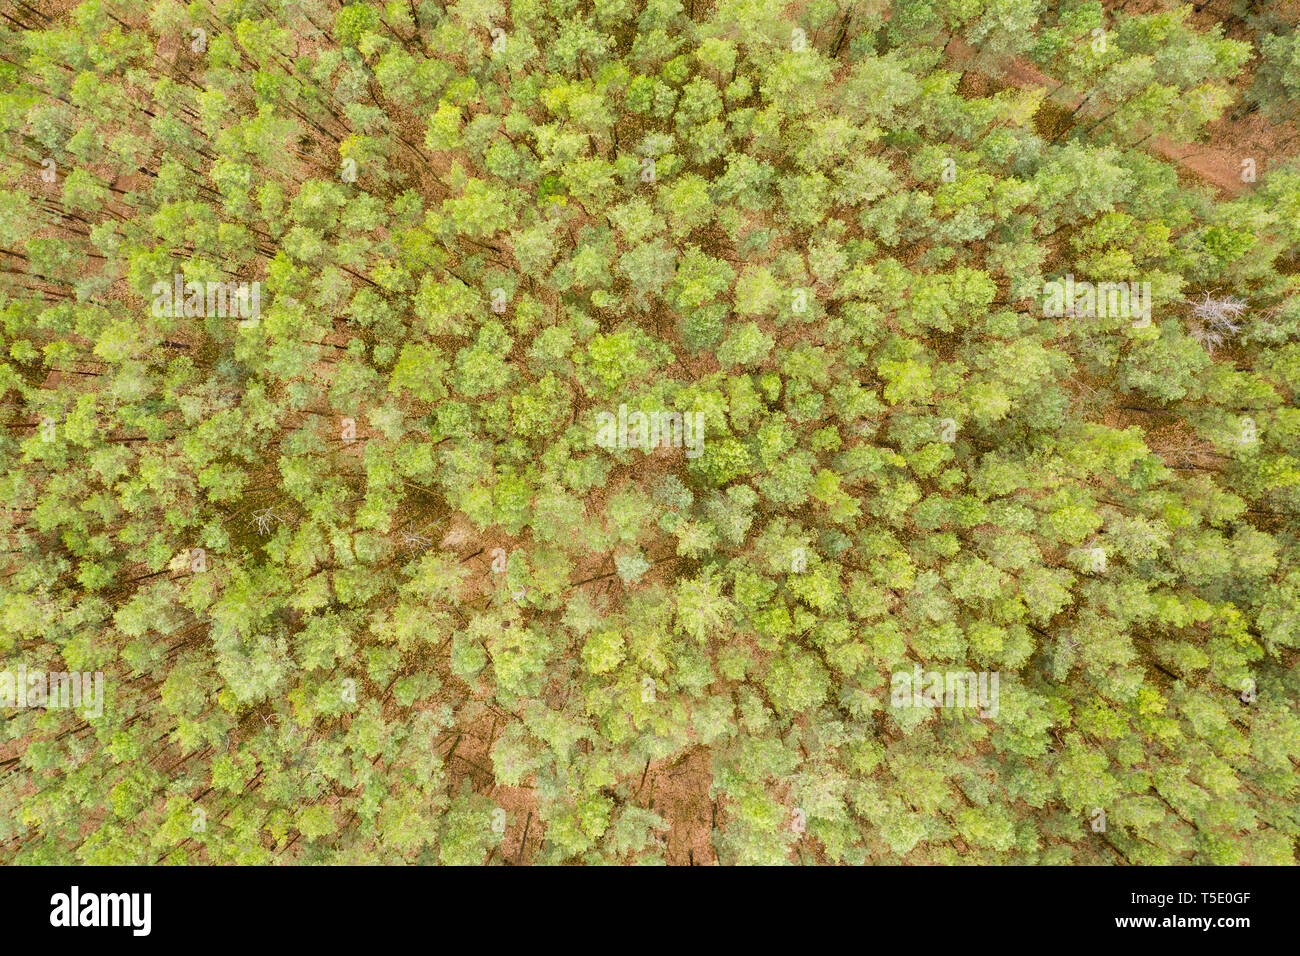 Aerial top view forest, Texture of forest view from above Stock Photo